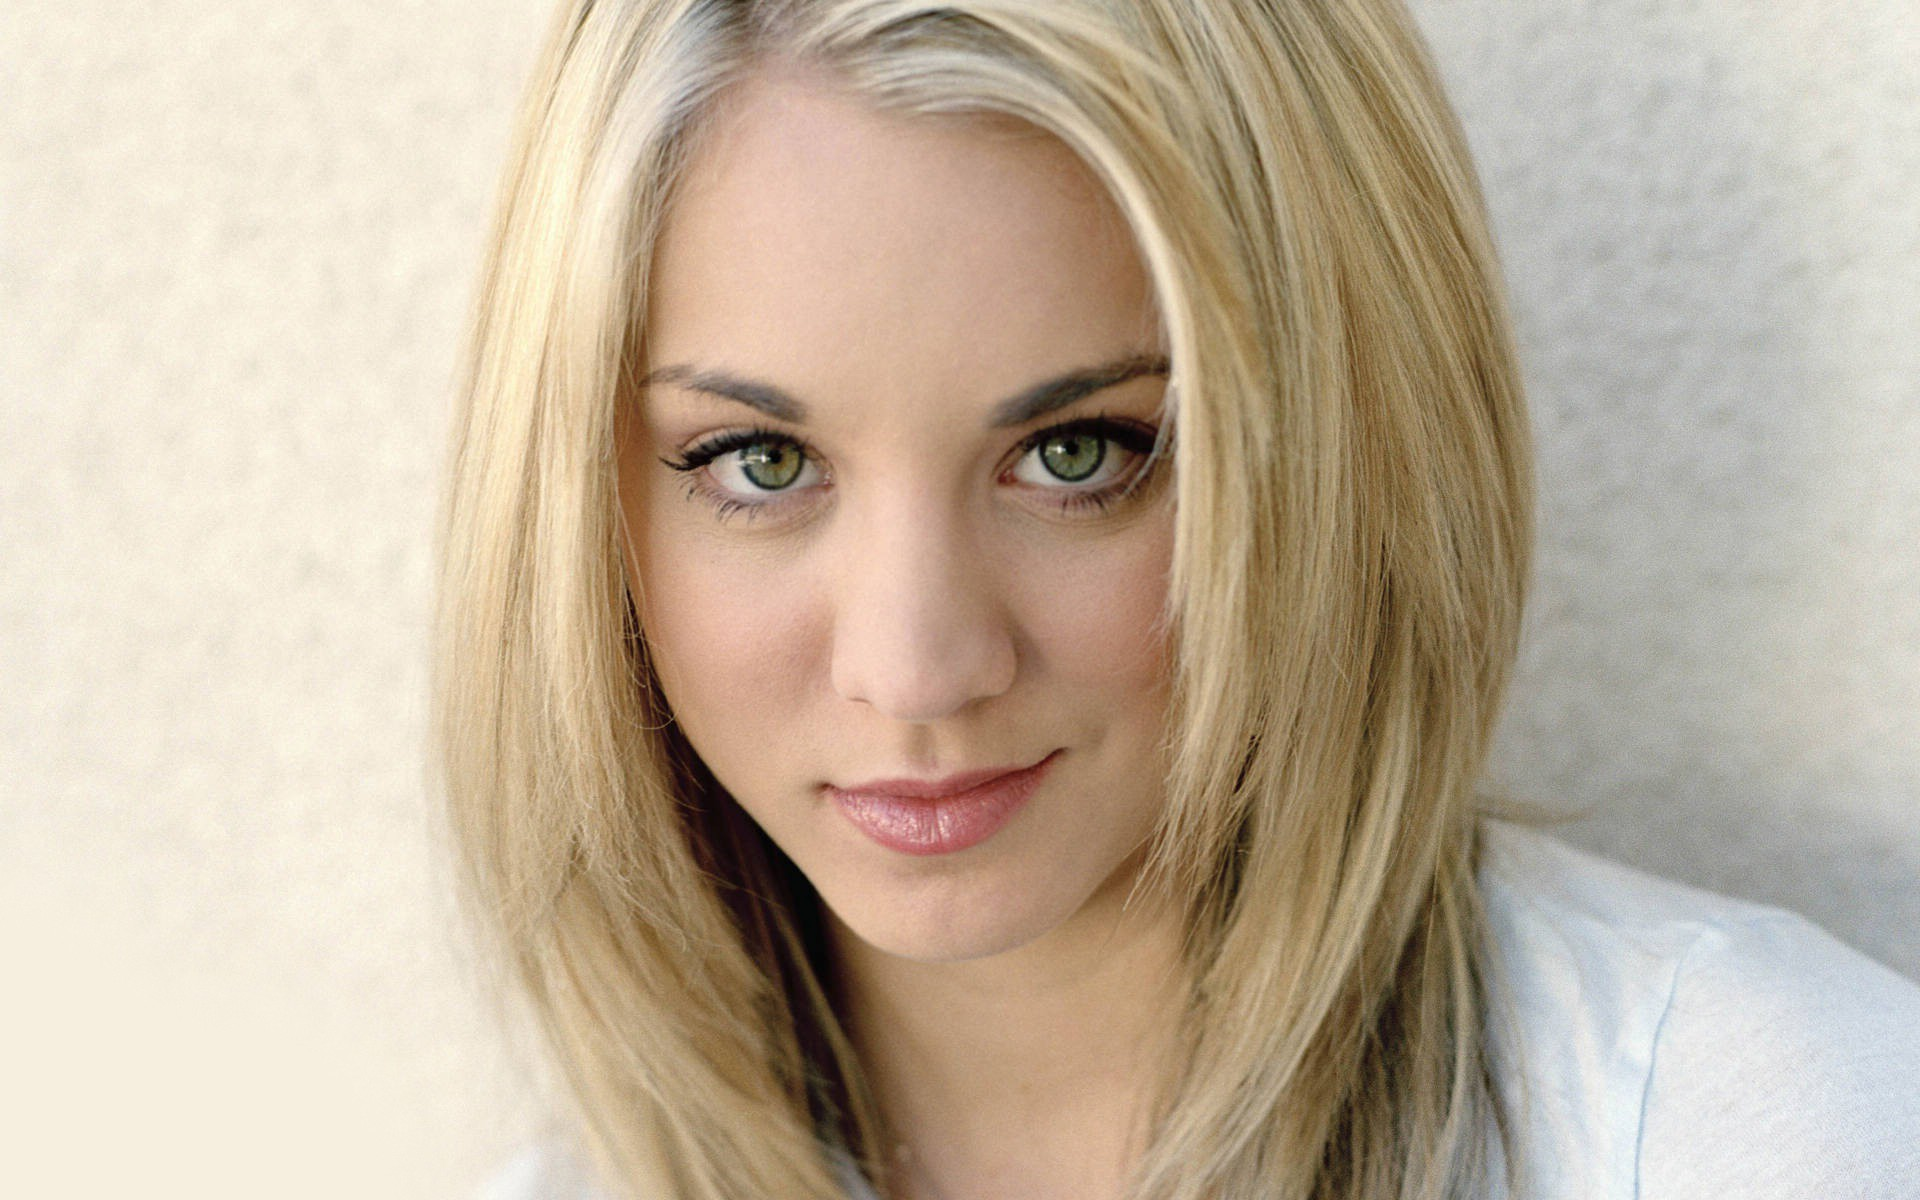 Kaley Cuoco Wallpapers Images Photos Pictures Backgrounds 1920x1200